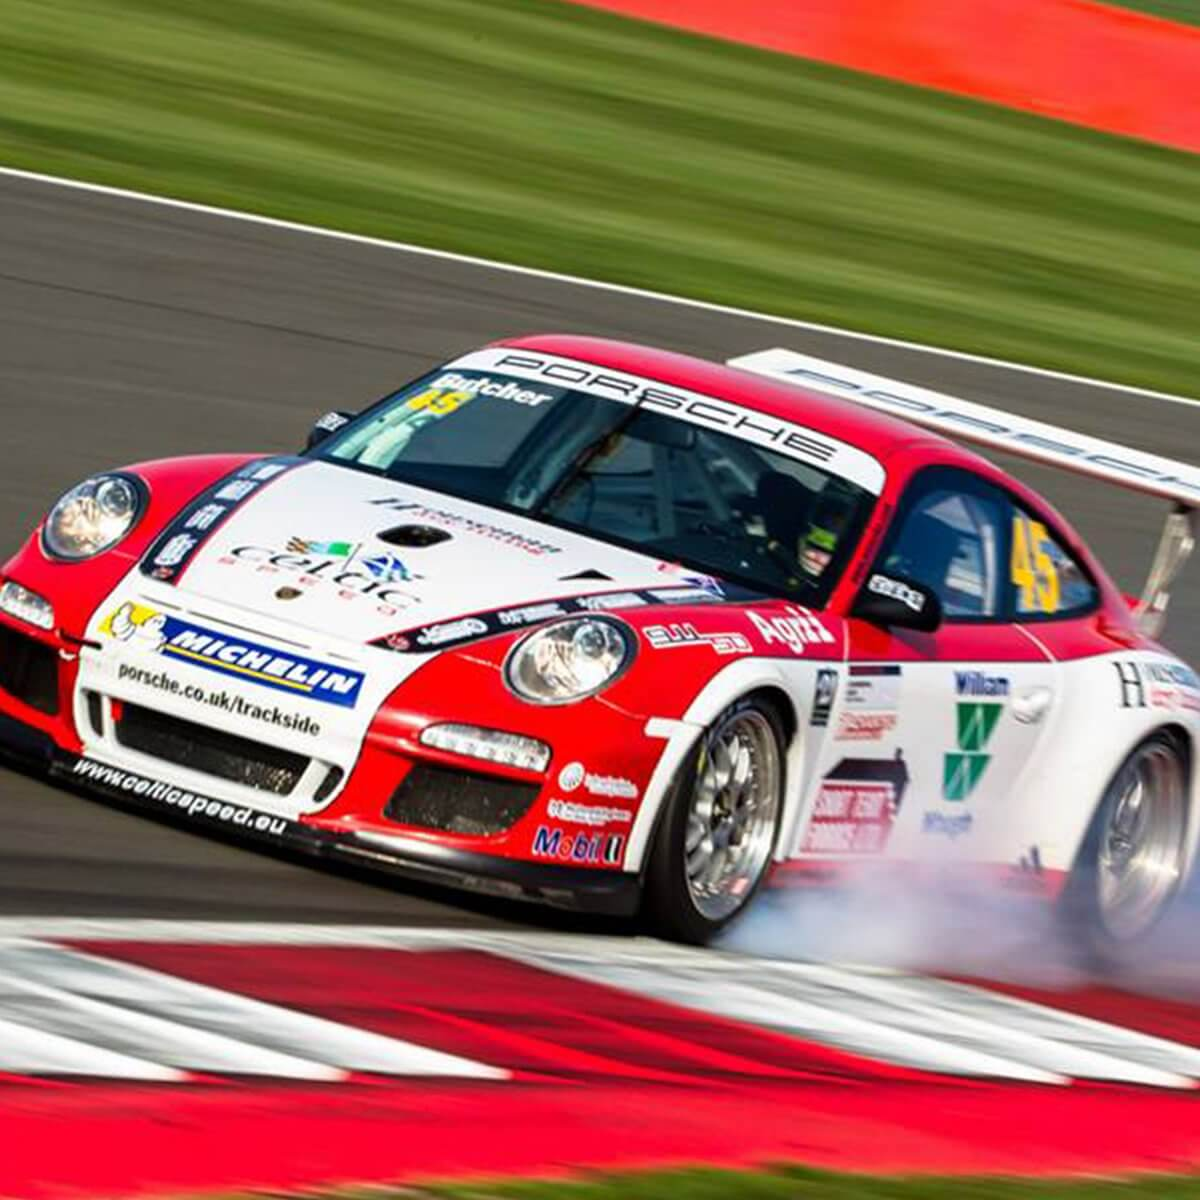 Design & Signage, racing car graphics